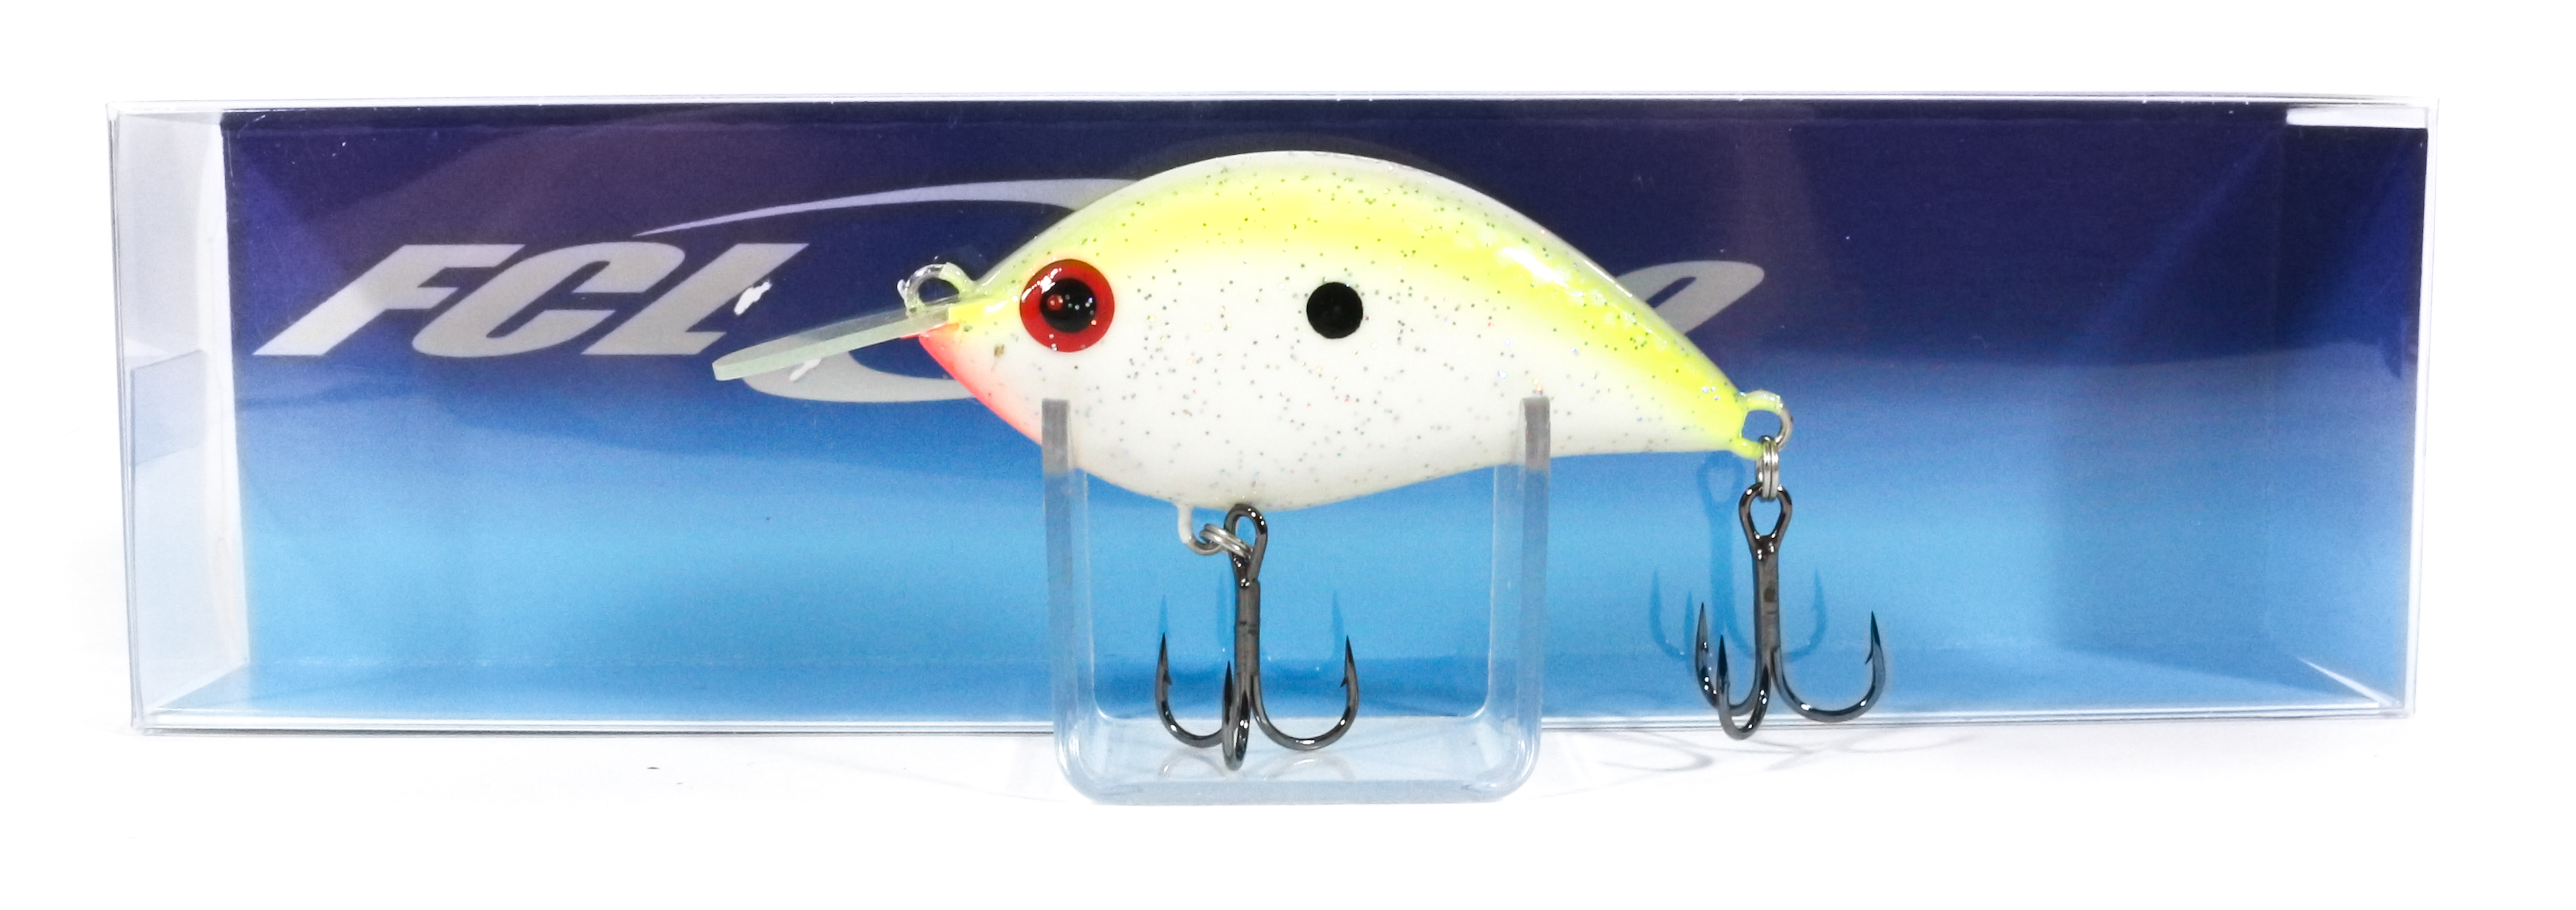 FCL Labo Lure TKC 53 Floating Lure SE (3702)